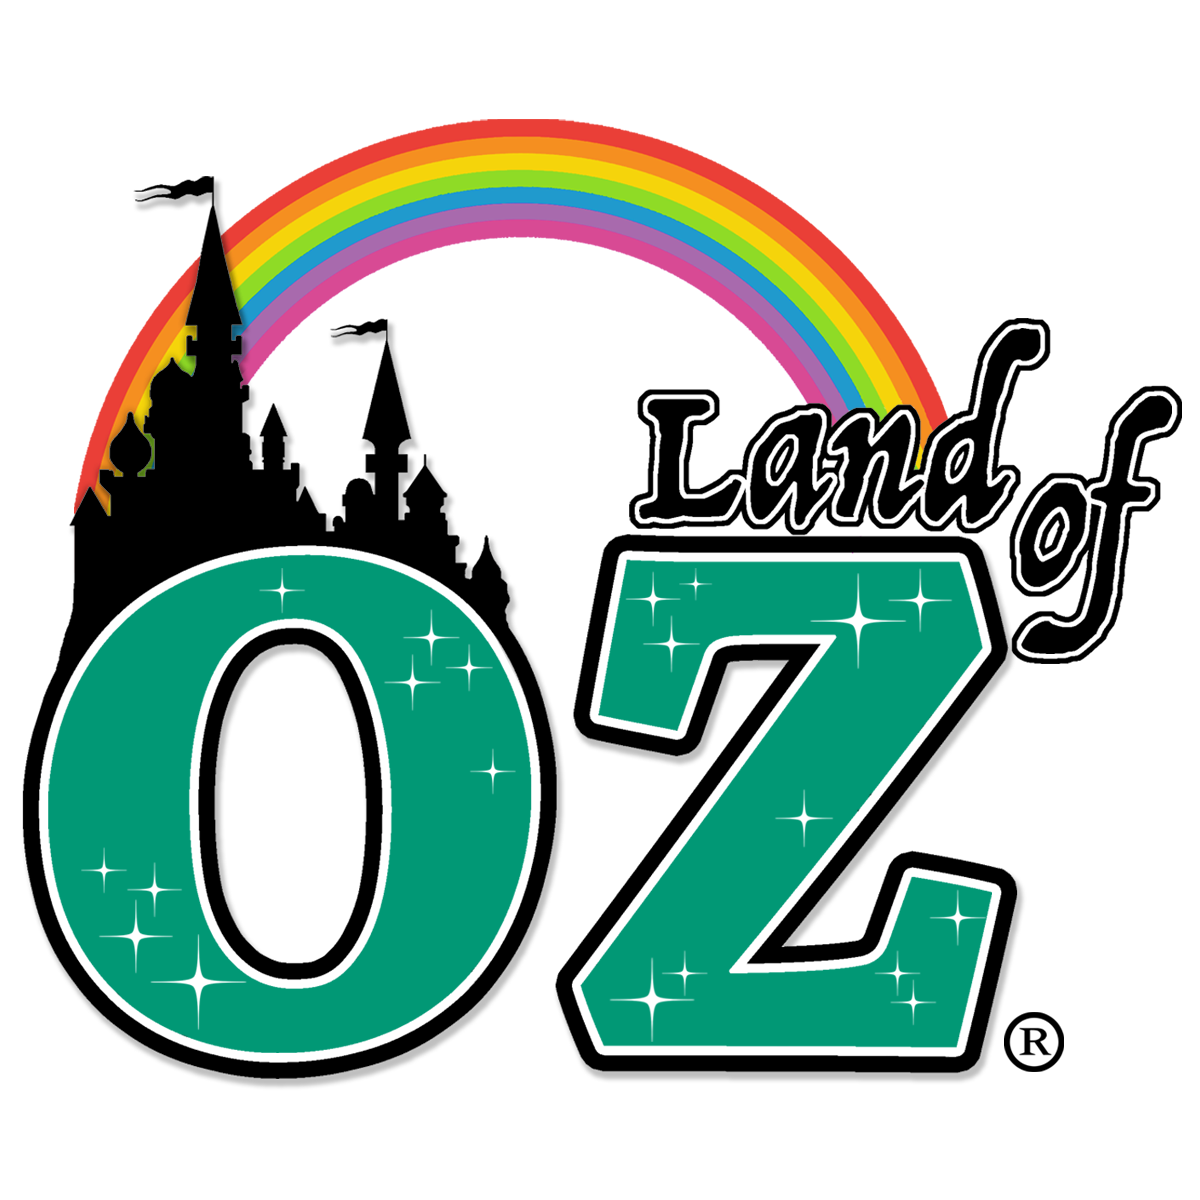 Official Merchandise From The Land Of Oz Located On Beech Mountain In The Appalachian Mountains The Wonderful Wizard Of Oz Wizard Of Oz Appalachian Mountains